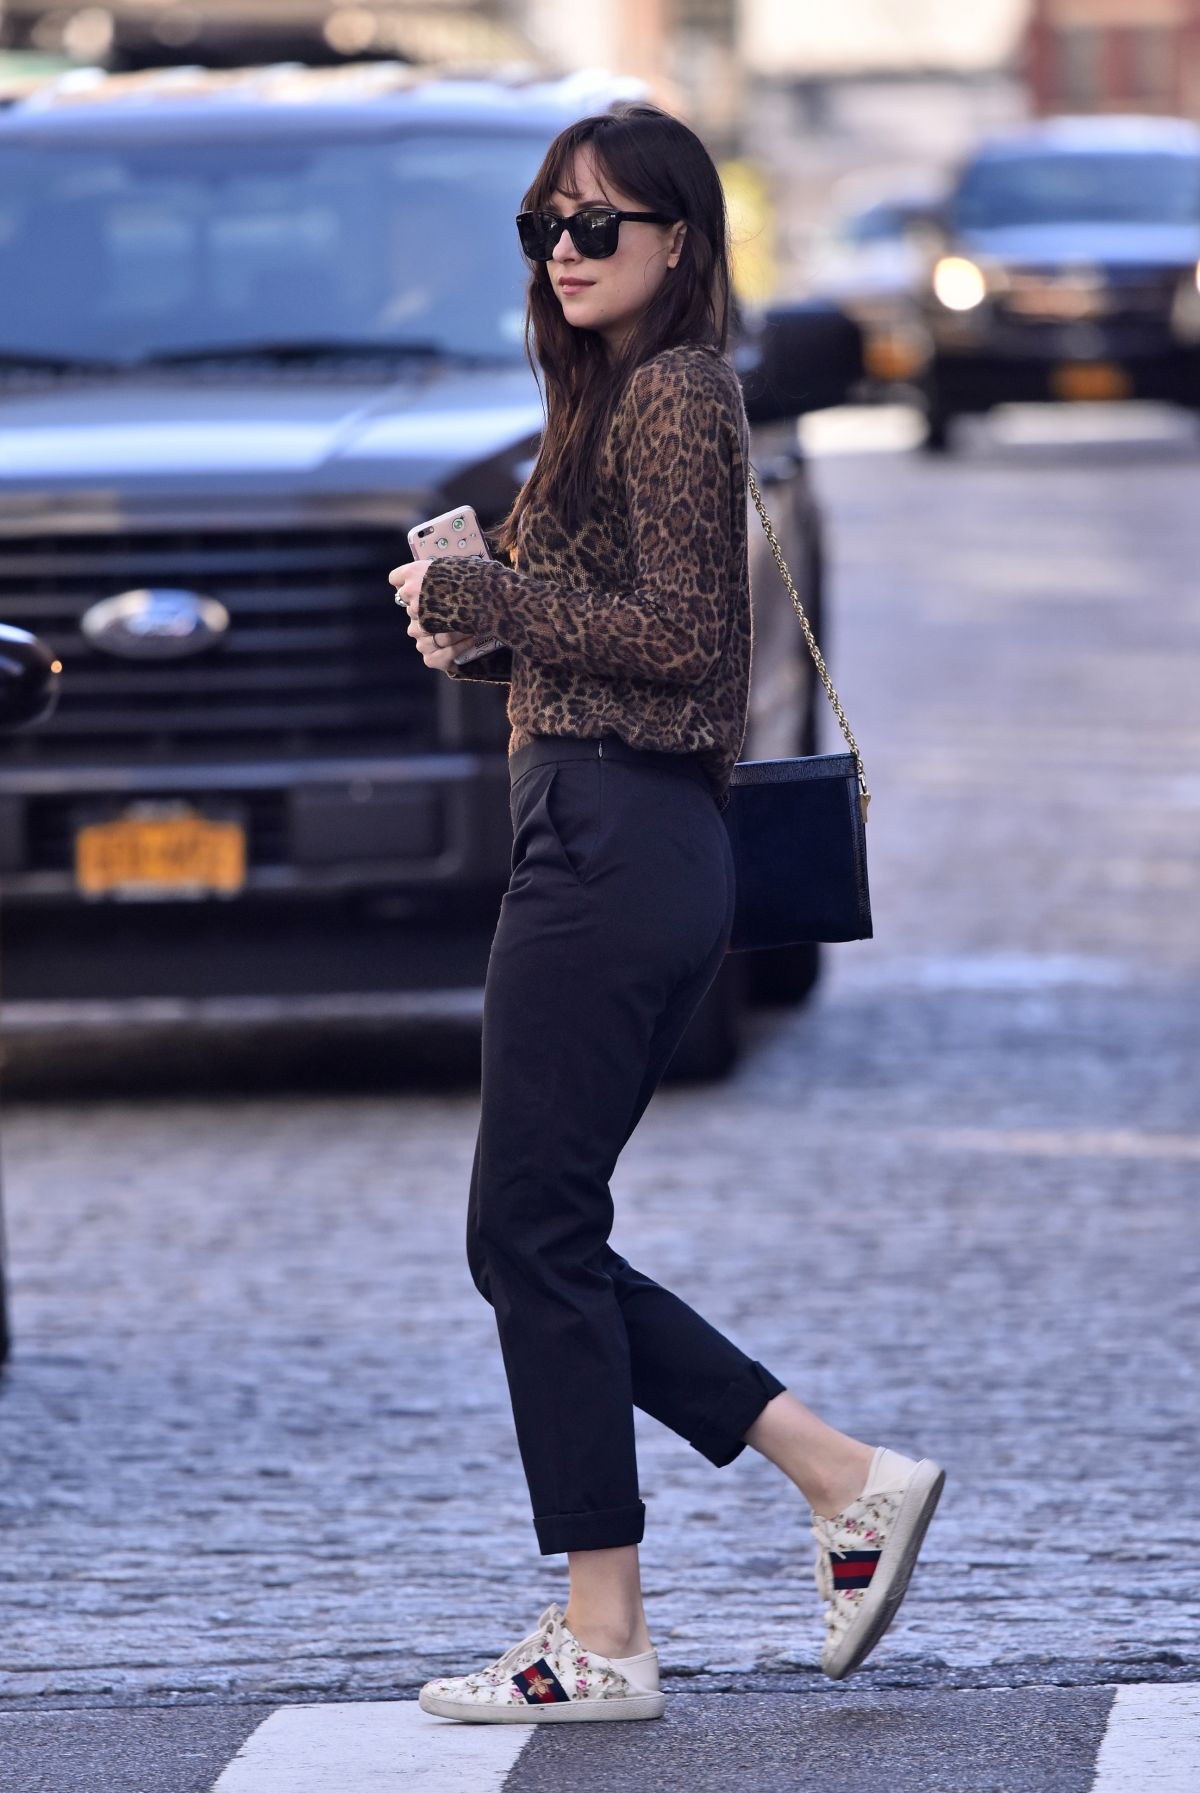 Dakota Johnson Wears A Leopard Top Paired With Gucci White